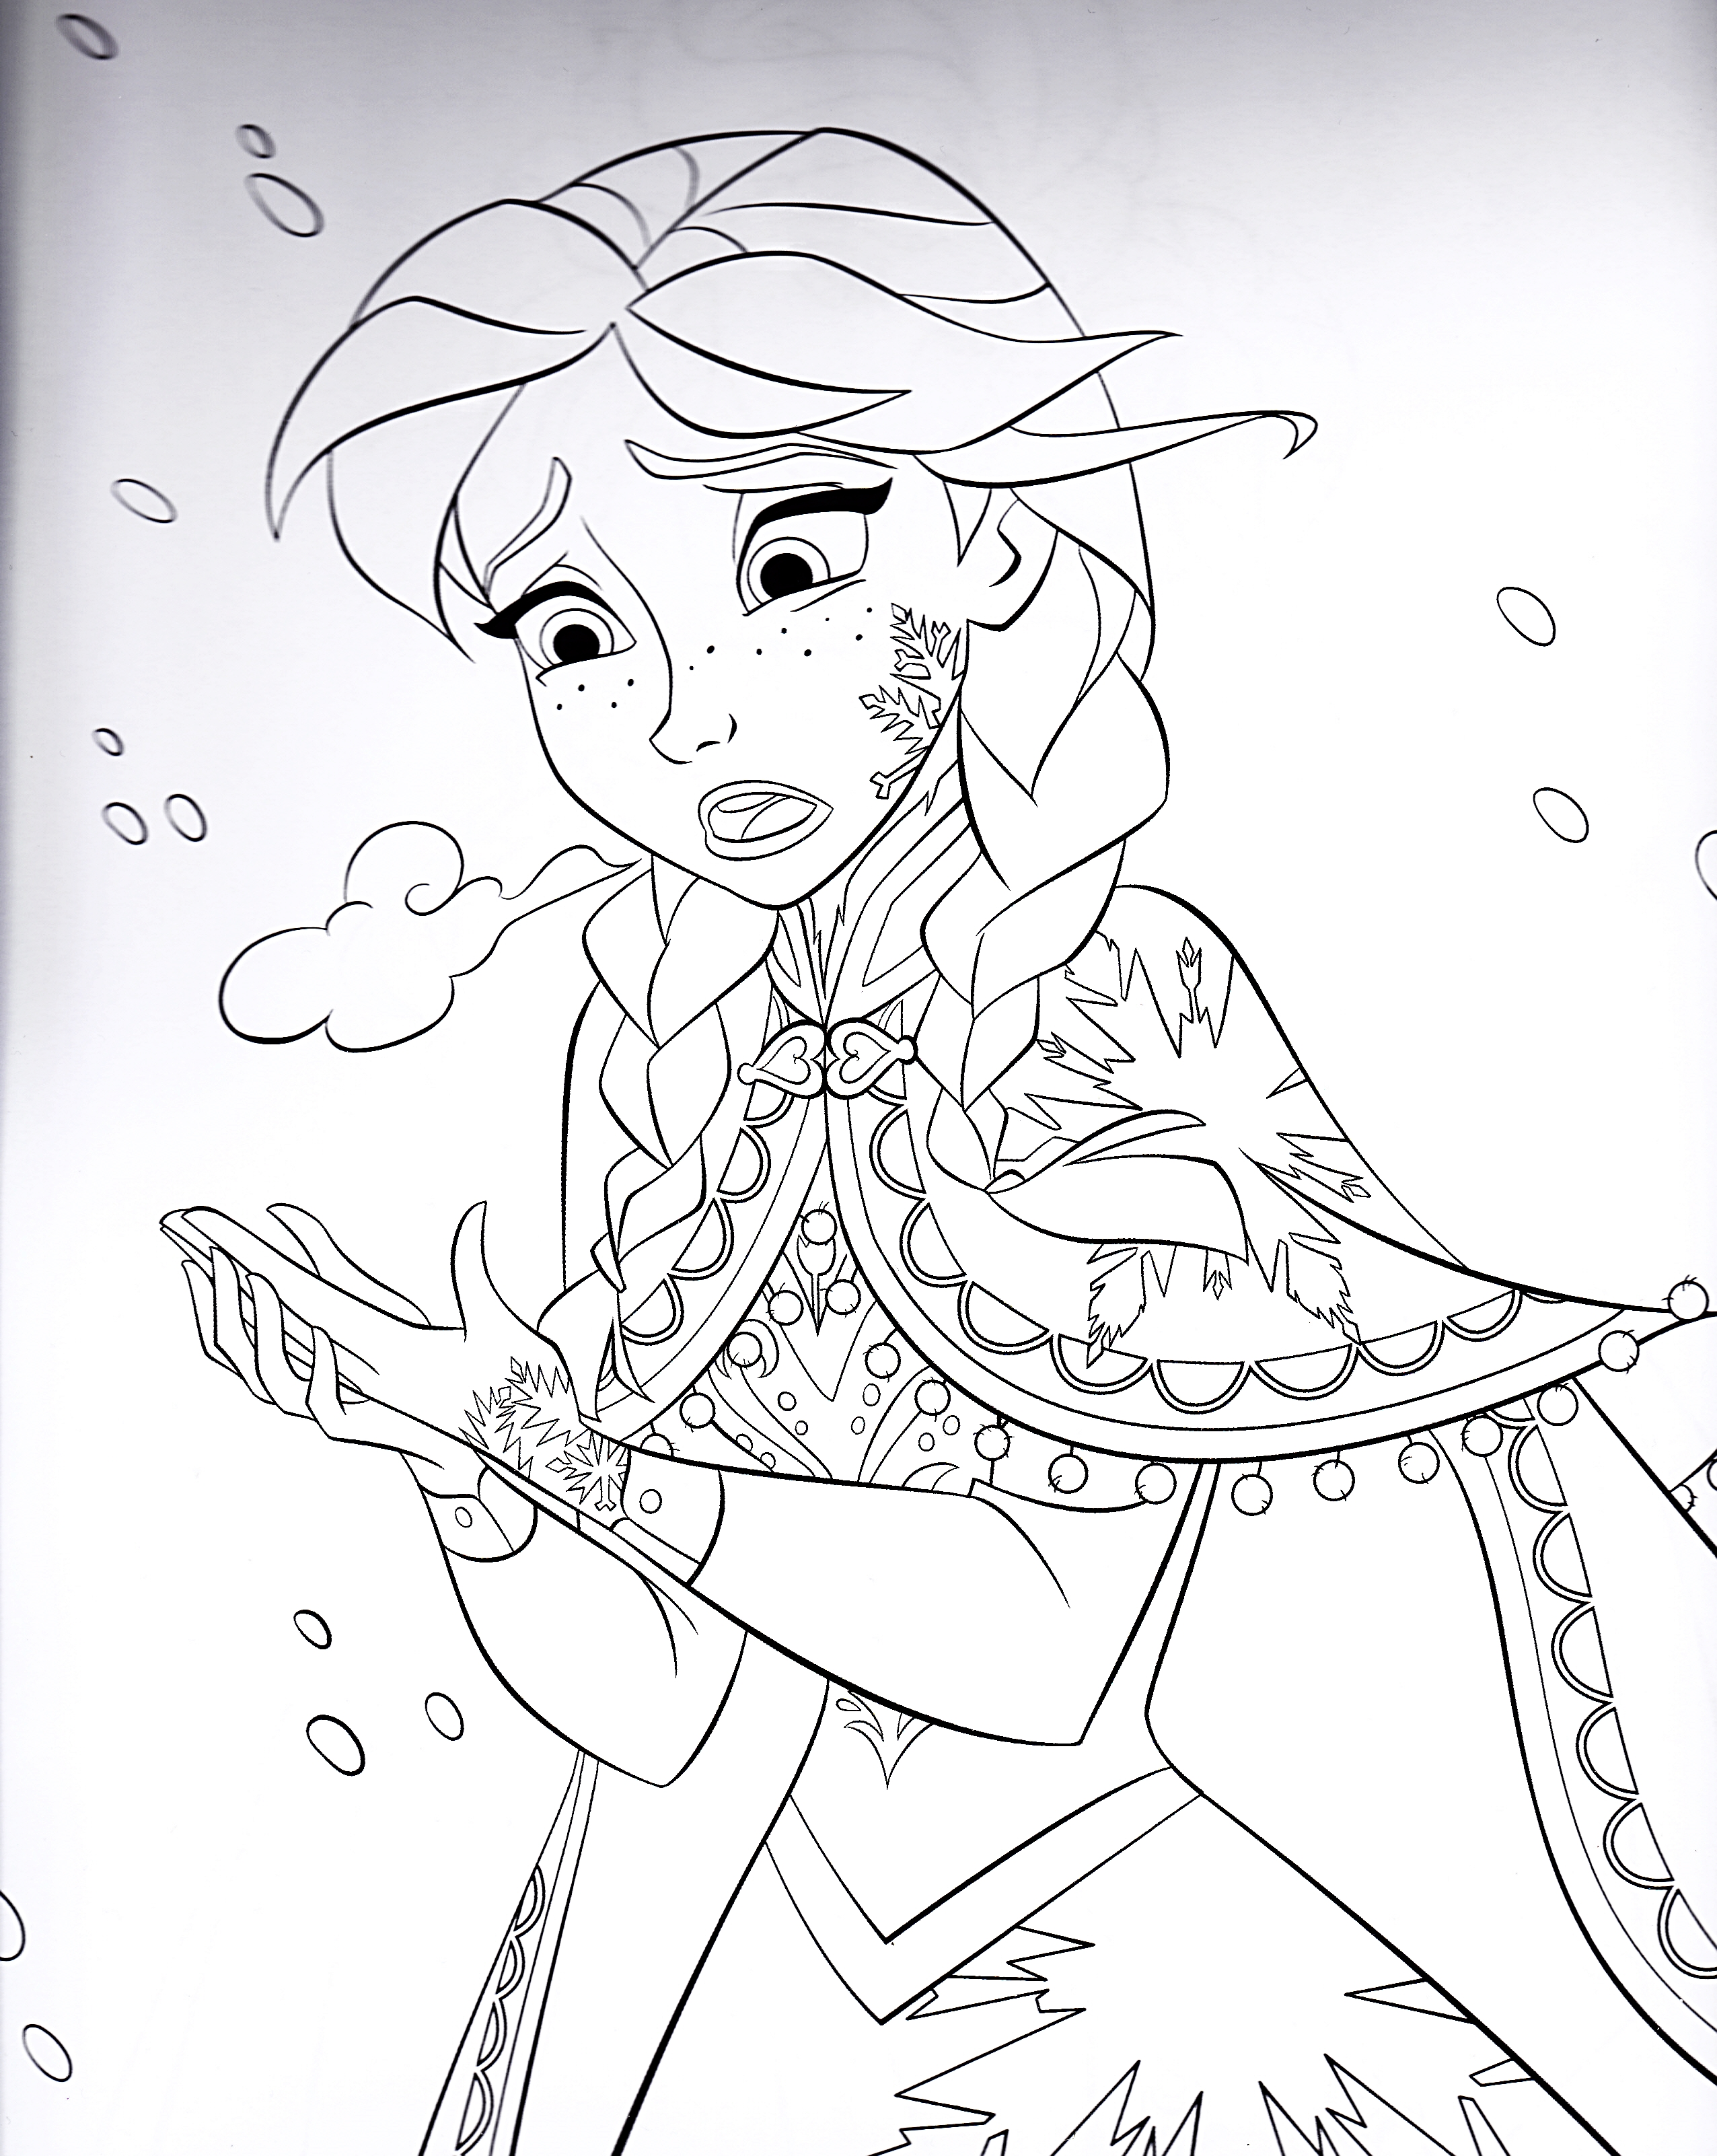 walt disney characters images walt disney coloring pages princess anna wallpaper photos 35802428